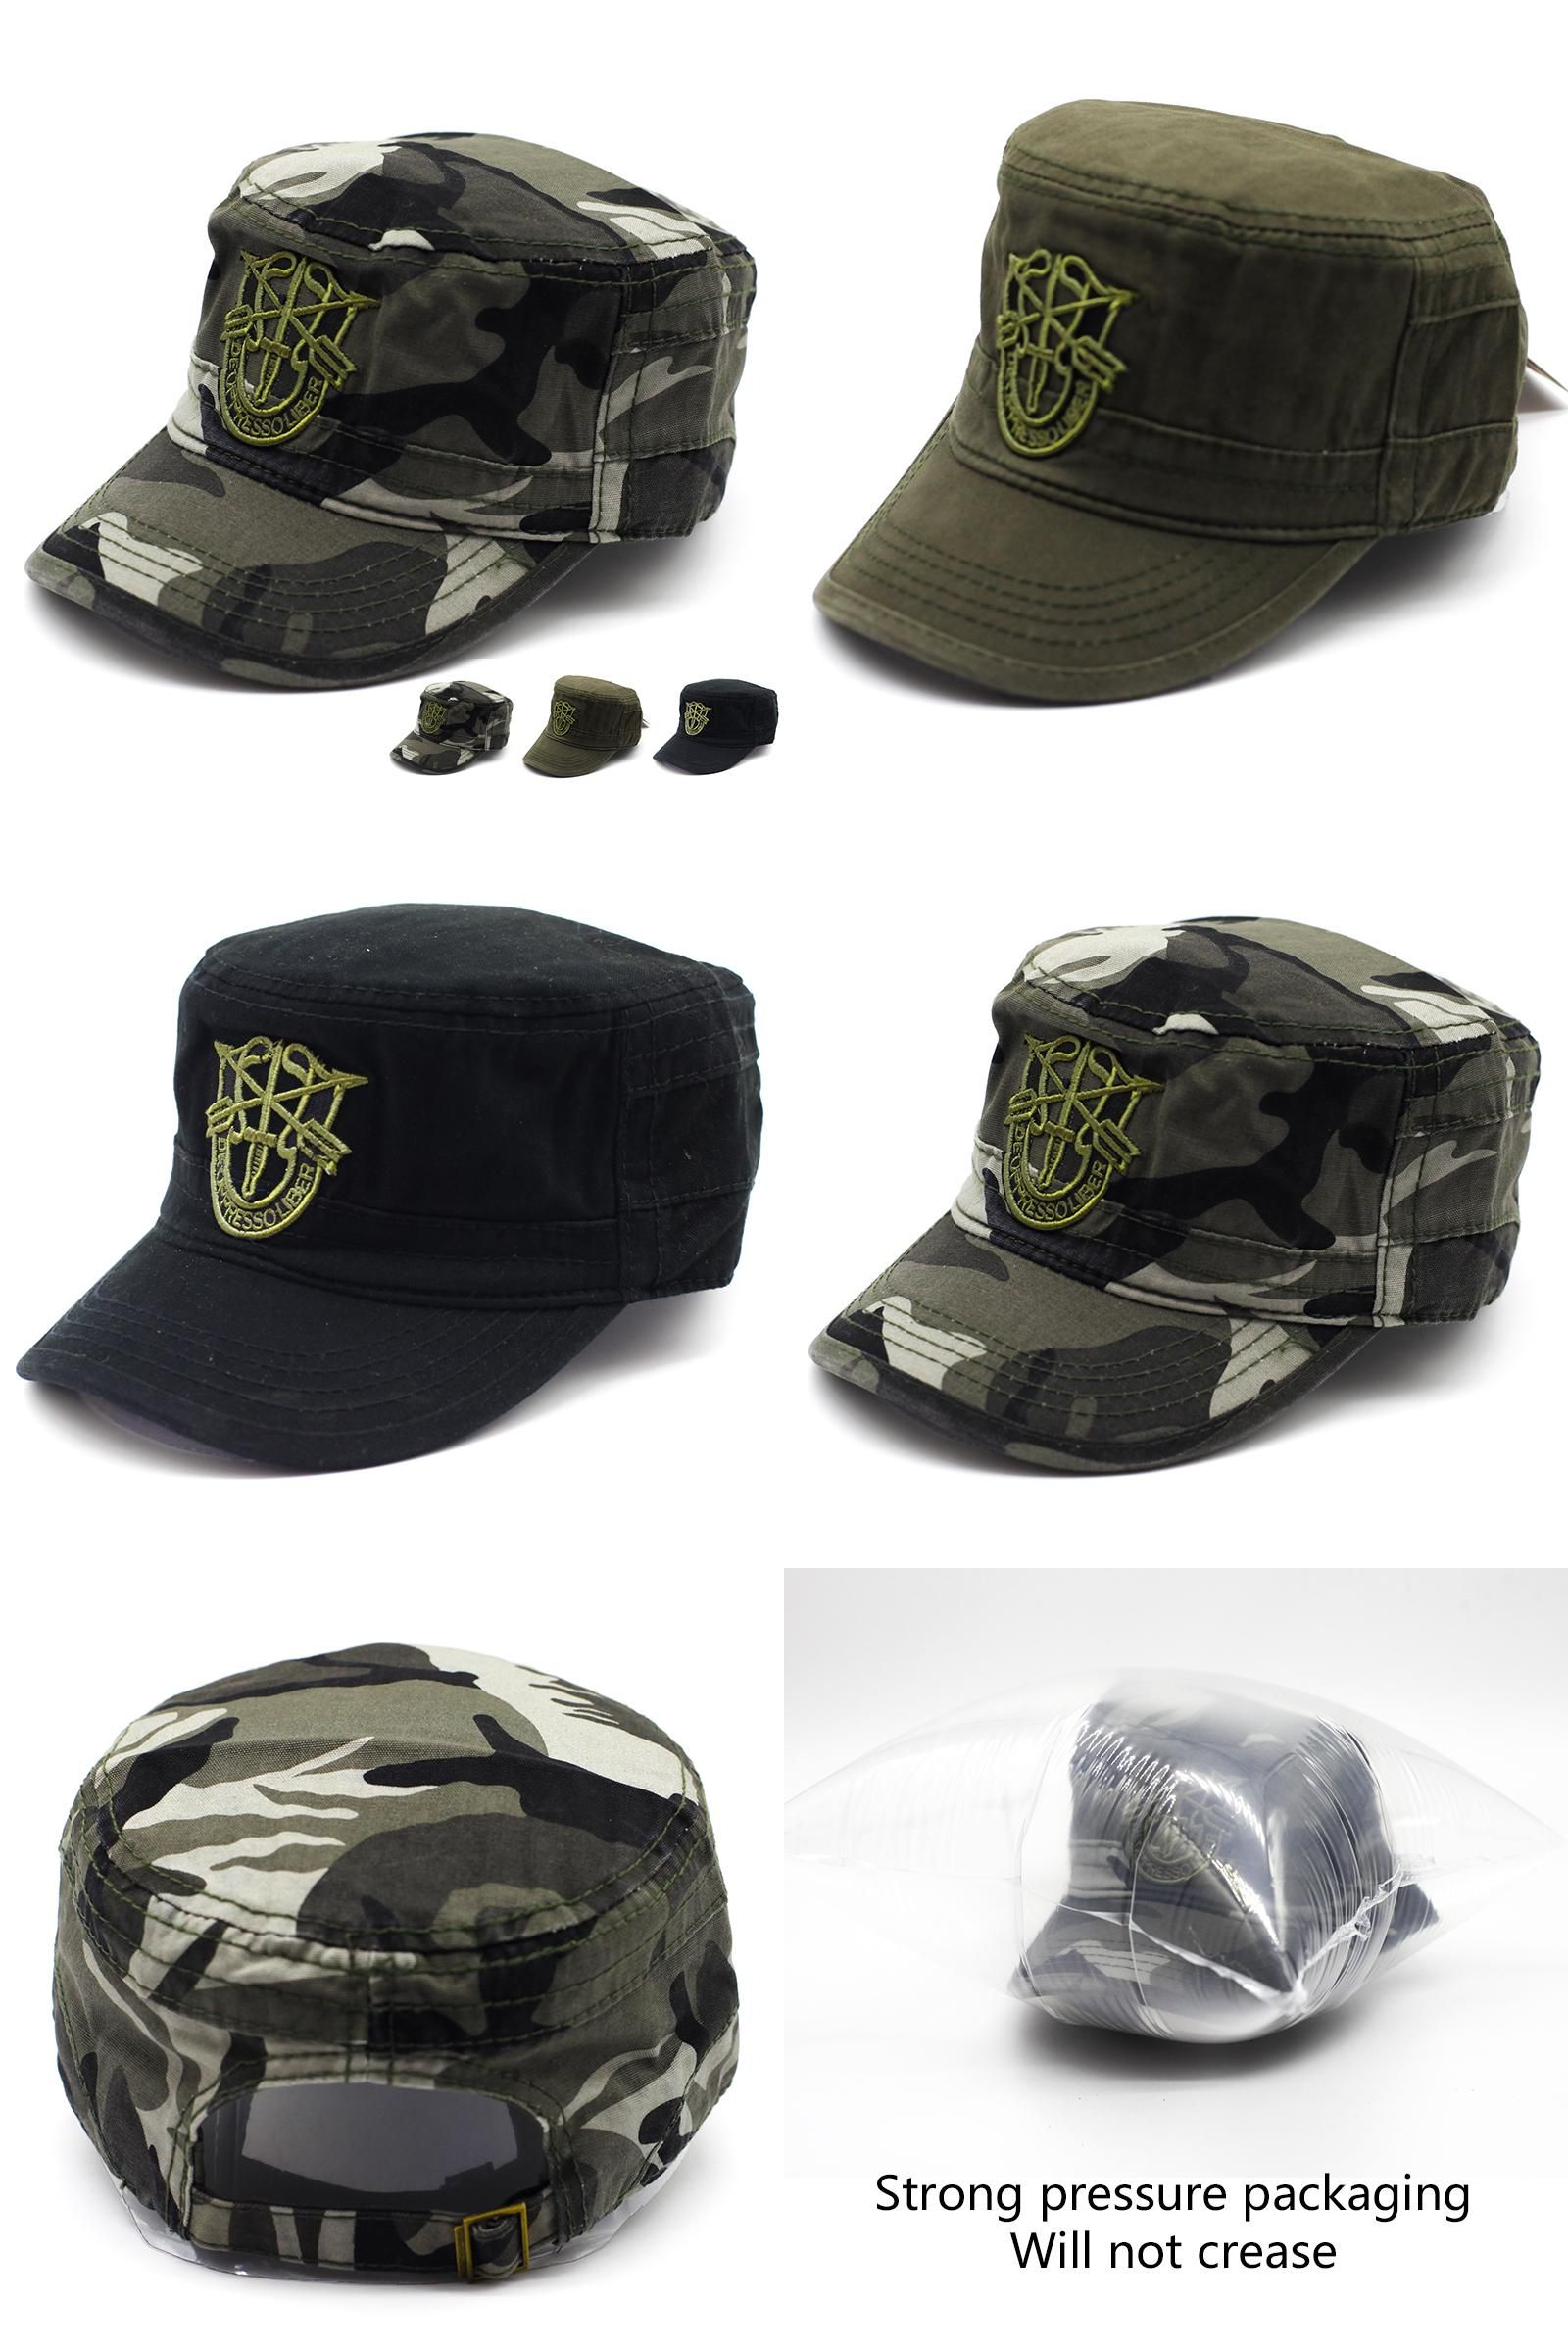 06863f3dd63  Visit to Buy  Men Tactical Army Camouflage Flat Cap Hats For Women Men  Summer